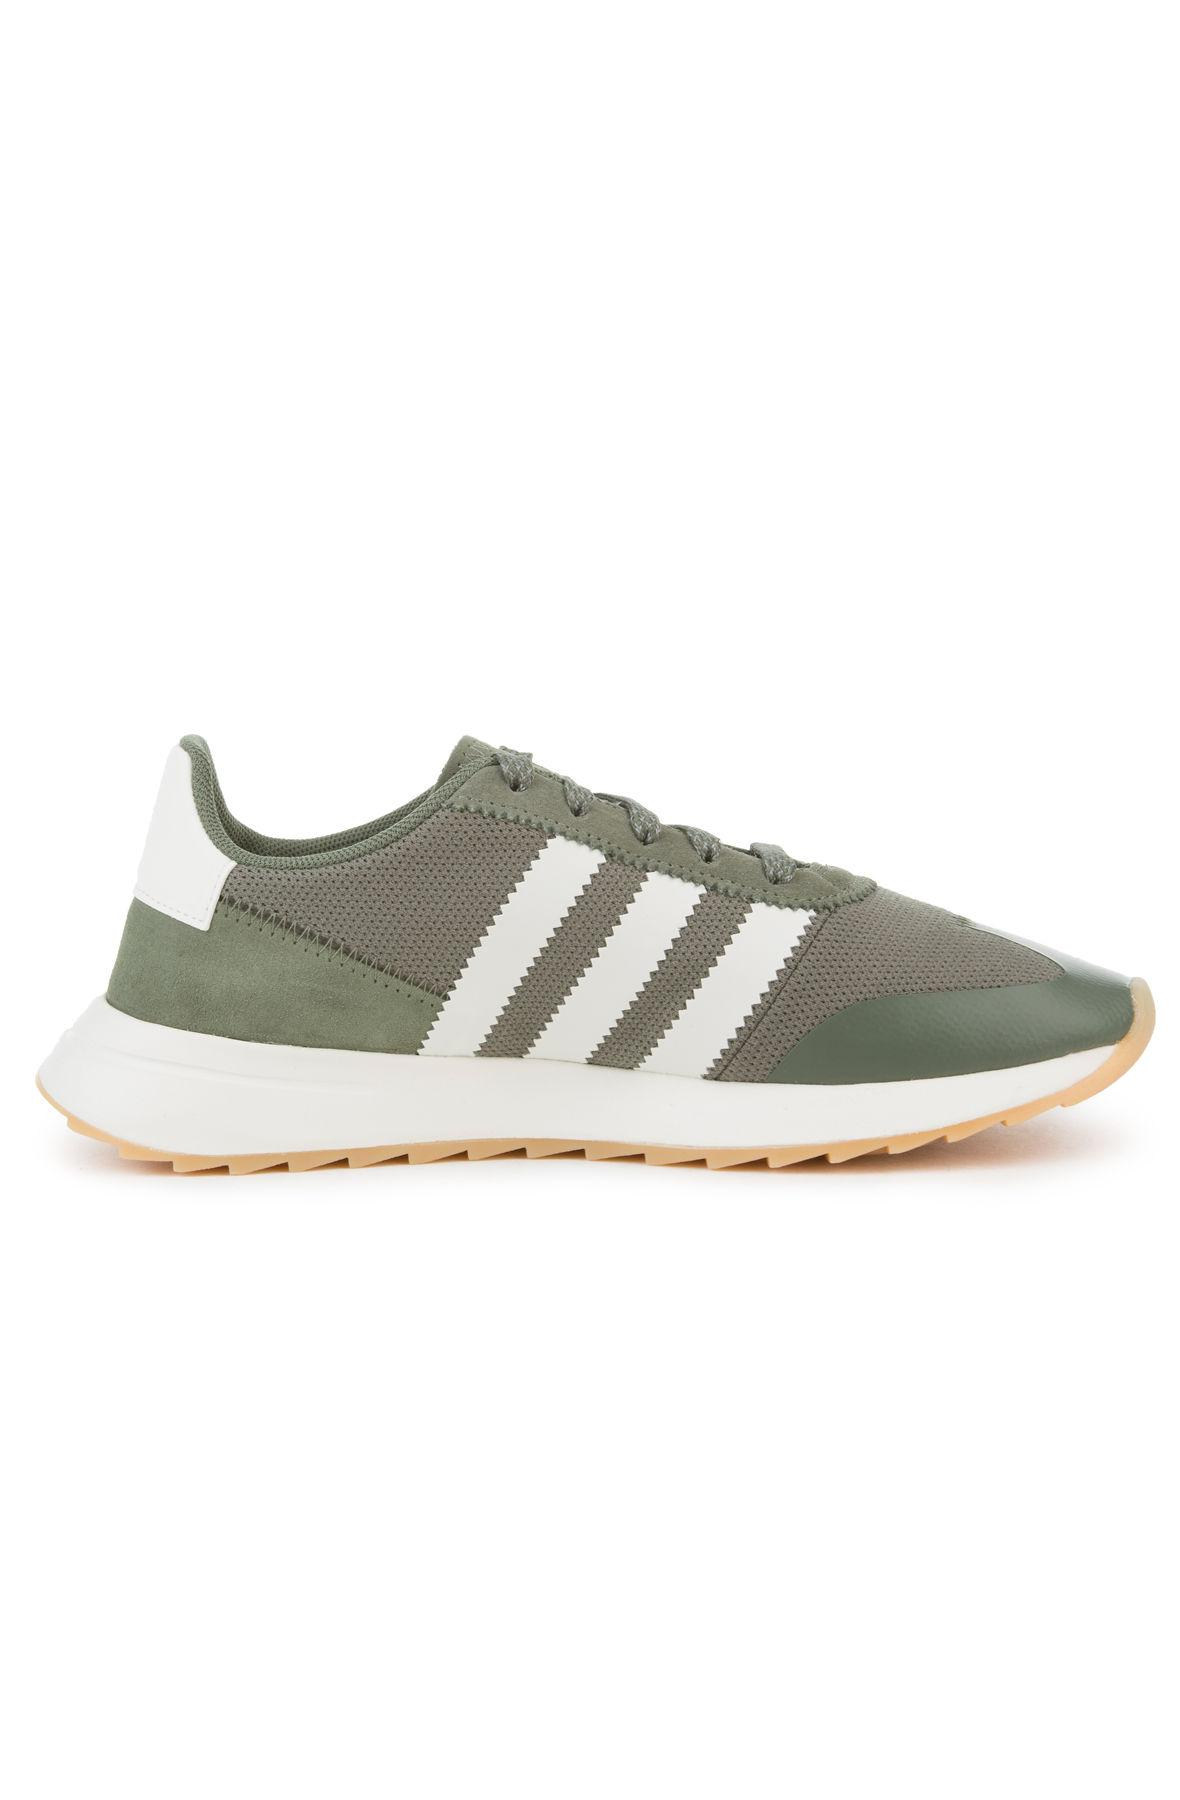 9e01639d965 Lyst - adidas The Women s Flb In St.major  Off White And Crystal ...